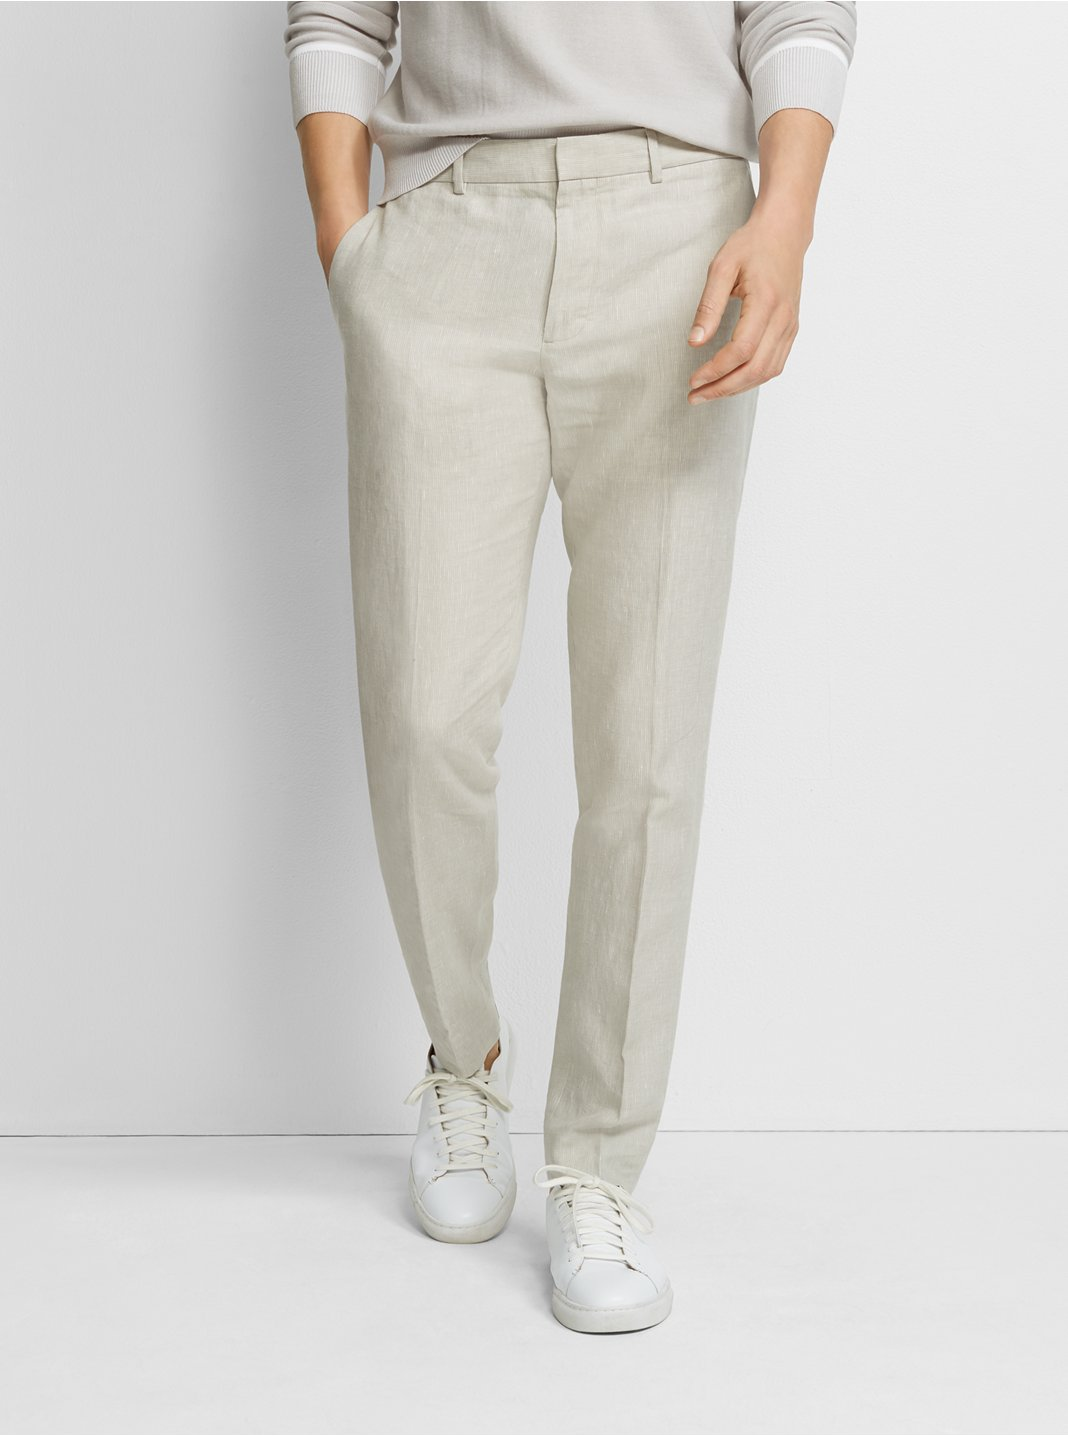 Sutton Linen Dress Pant